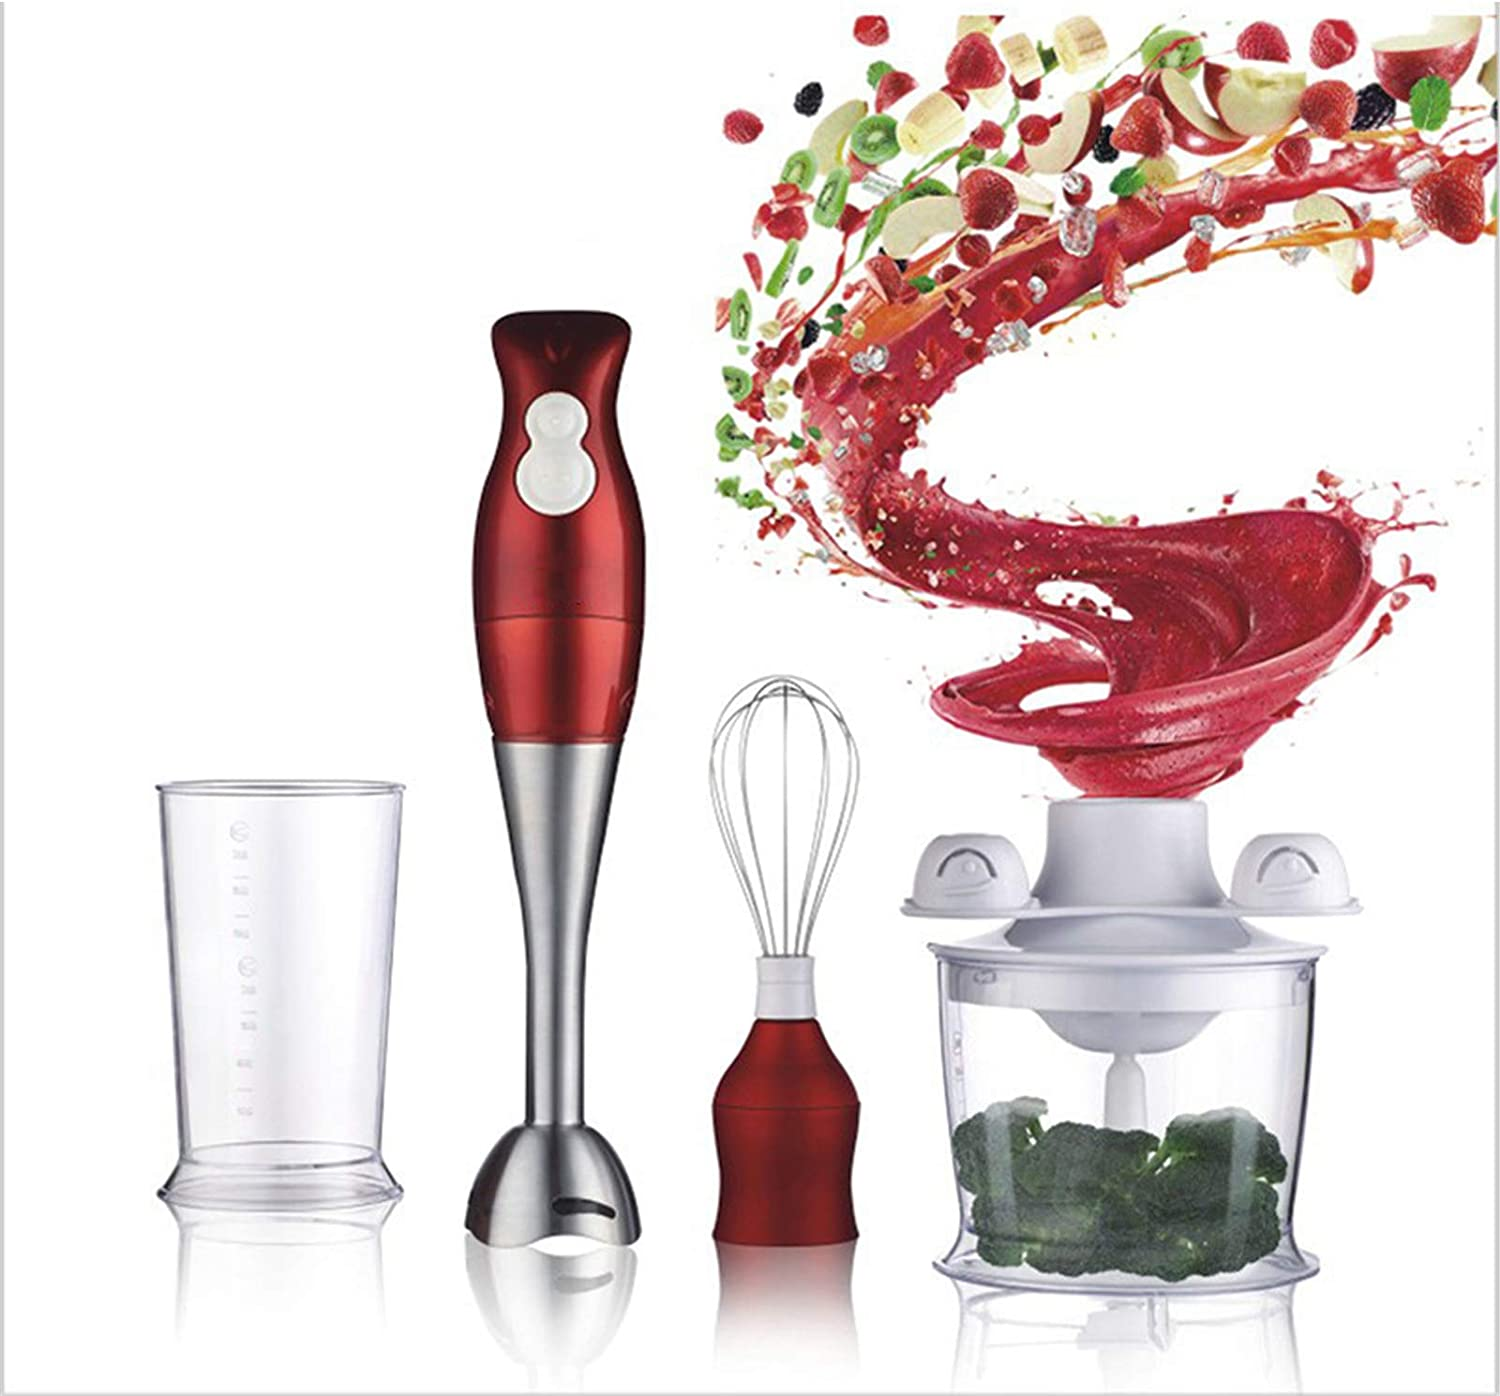 YFjyo Immersion Hand Blender,200W Electric Stick Blender with Blend & Chop,Whisk & Chopping Jar Attachments,Dual Speed,One-Handed Operation